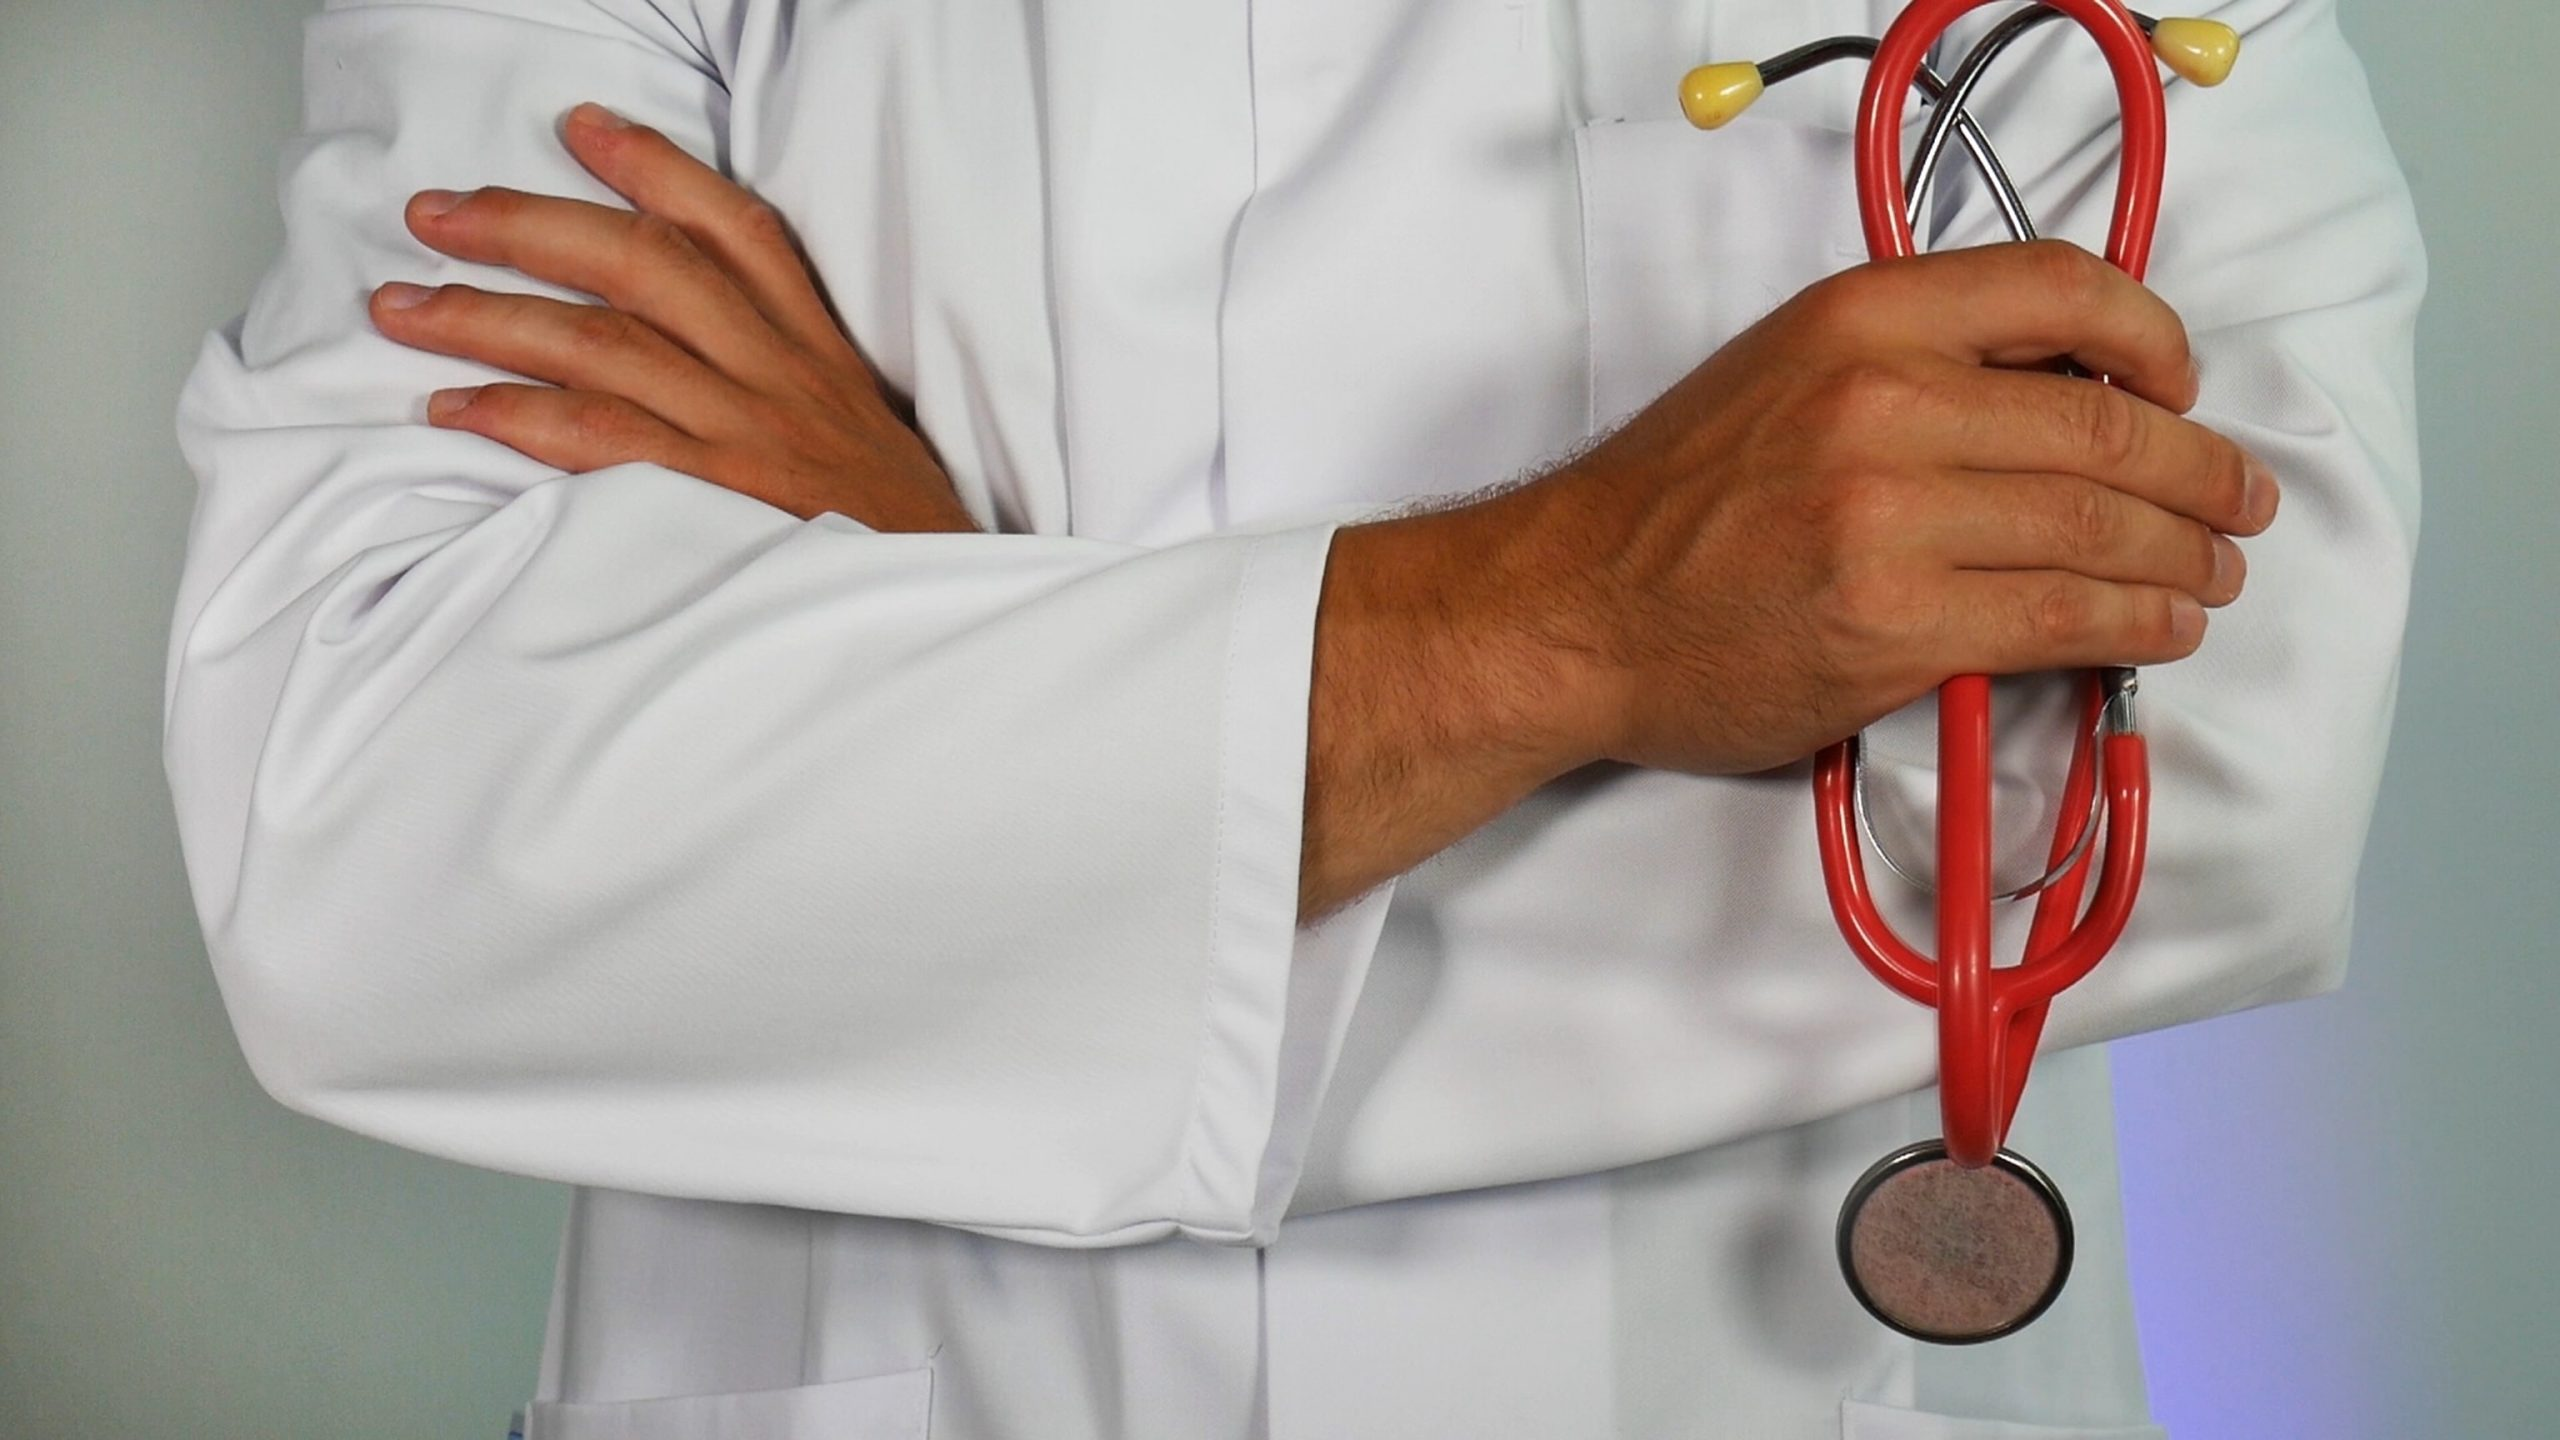 A doctor in a white coat is shown with their arms crossed, holding a red stethoscope.